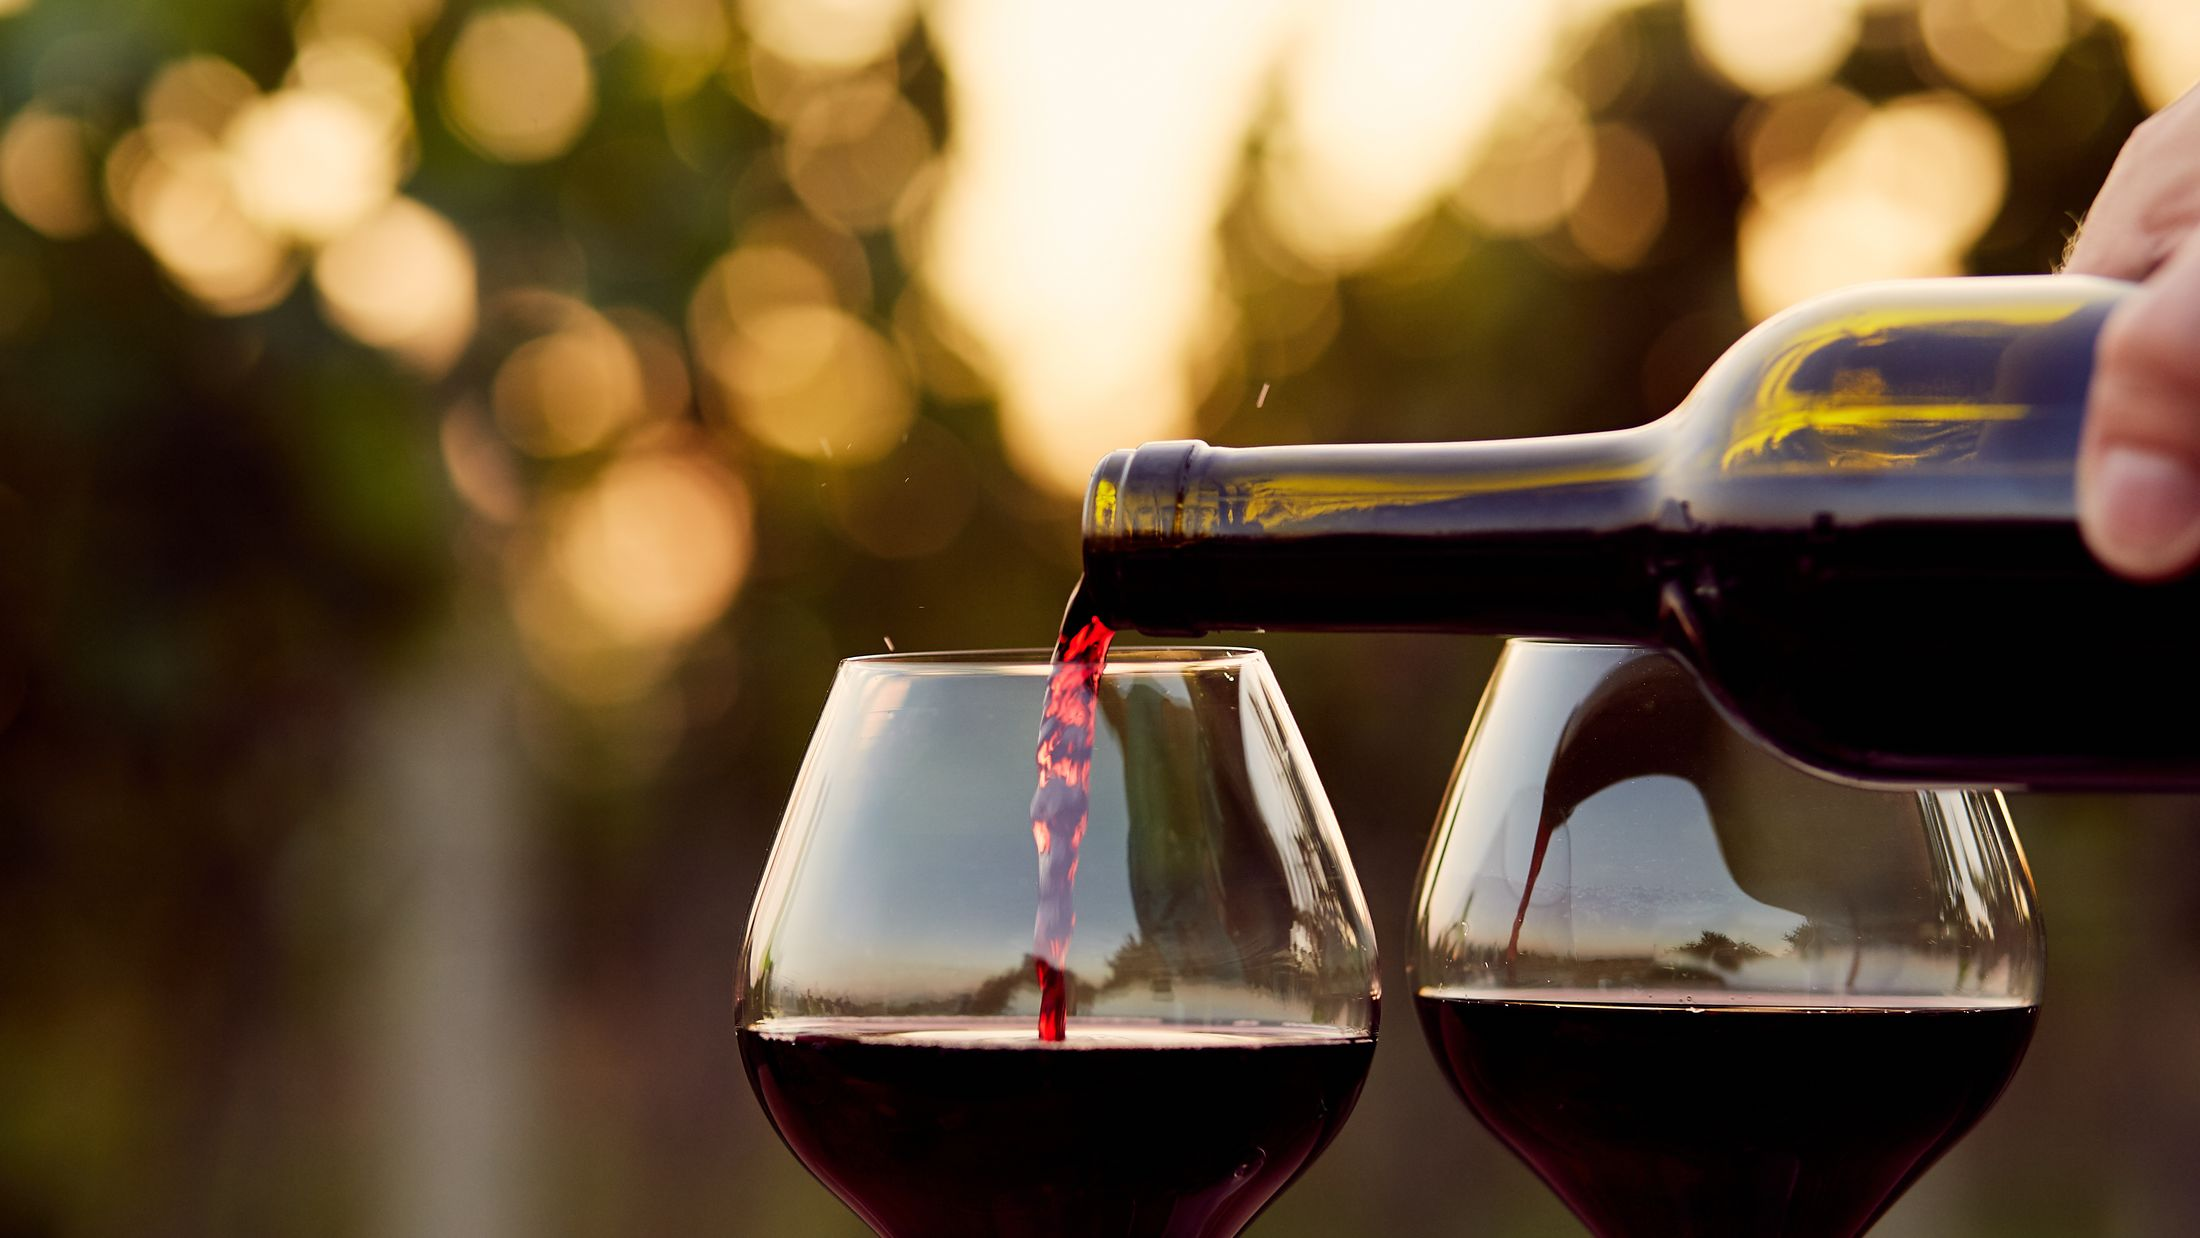 Pouring red wine into glasses in the vineyard, toned; Shutterstock ID 314750660; PO: Project Italy - Facilities images; Job: Project Italy - Facilities images; Client: H&J/Citalia